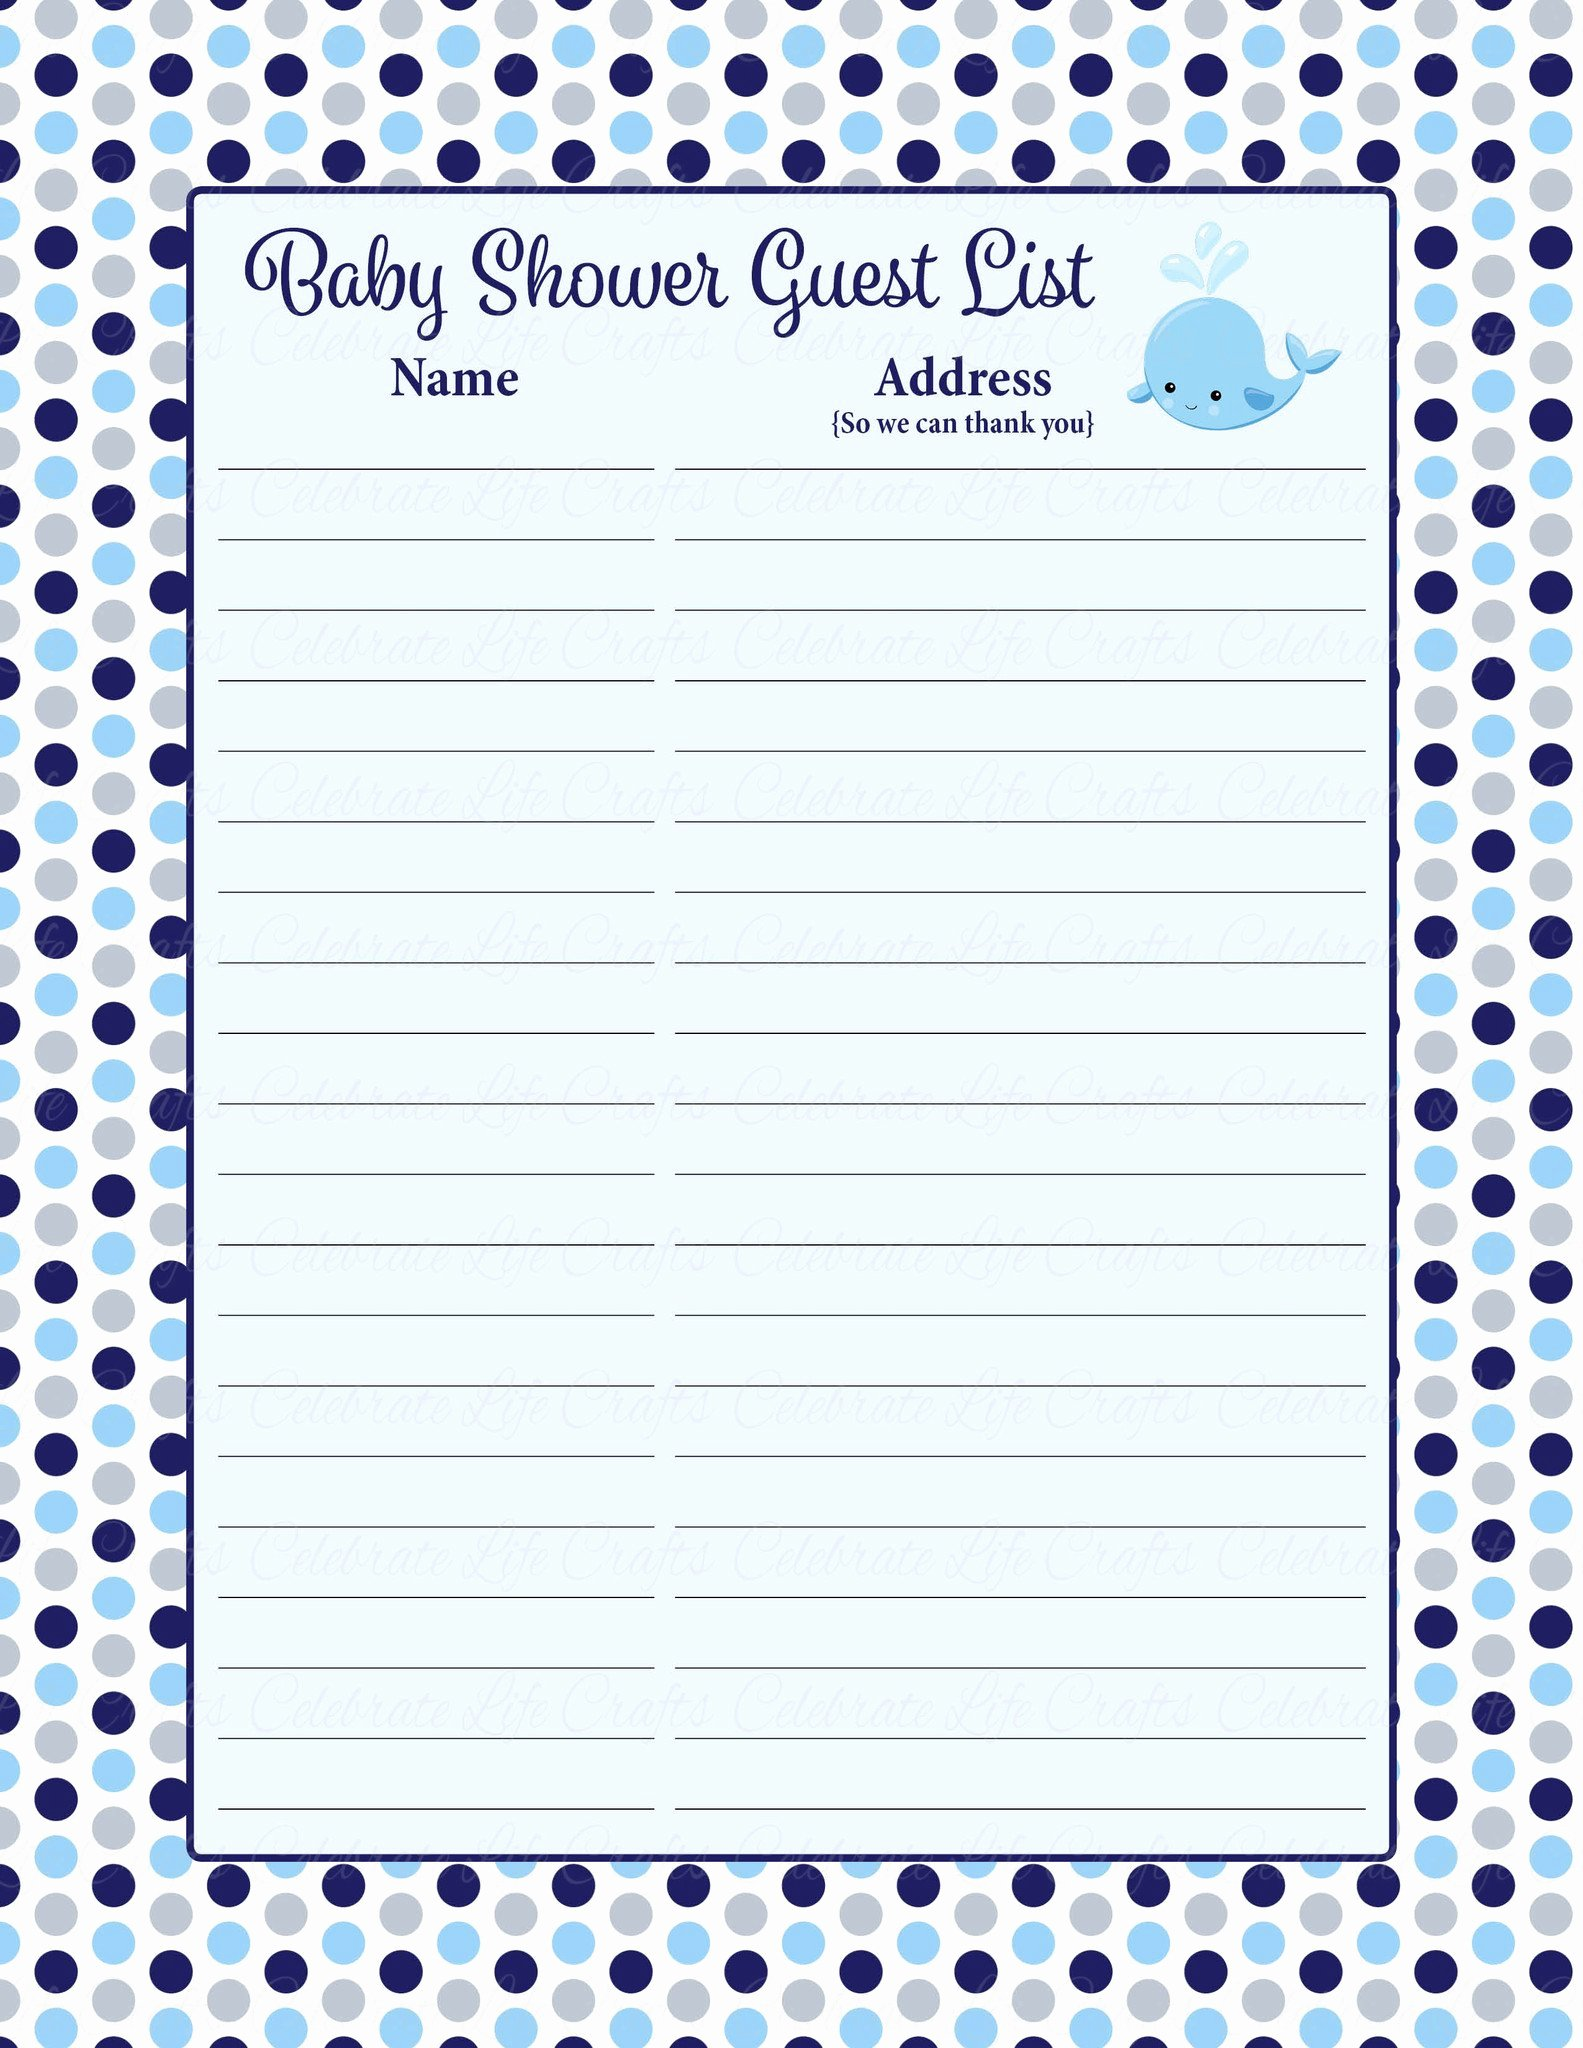 Baby Shower Gift Lists Elegant Baby Shower Guest List Set Whale Baby Shower theme for